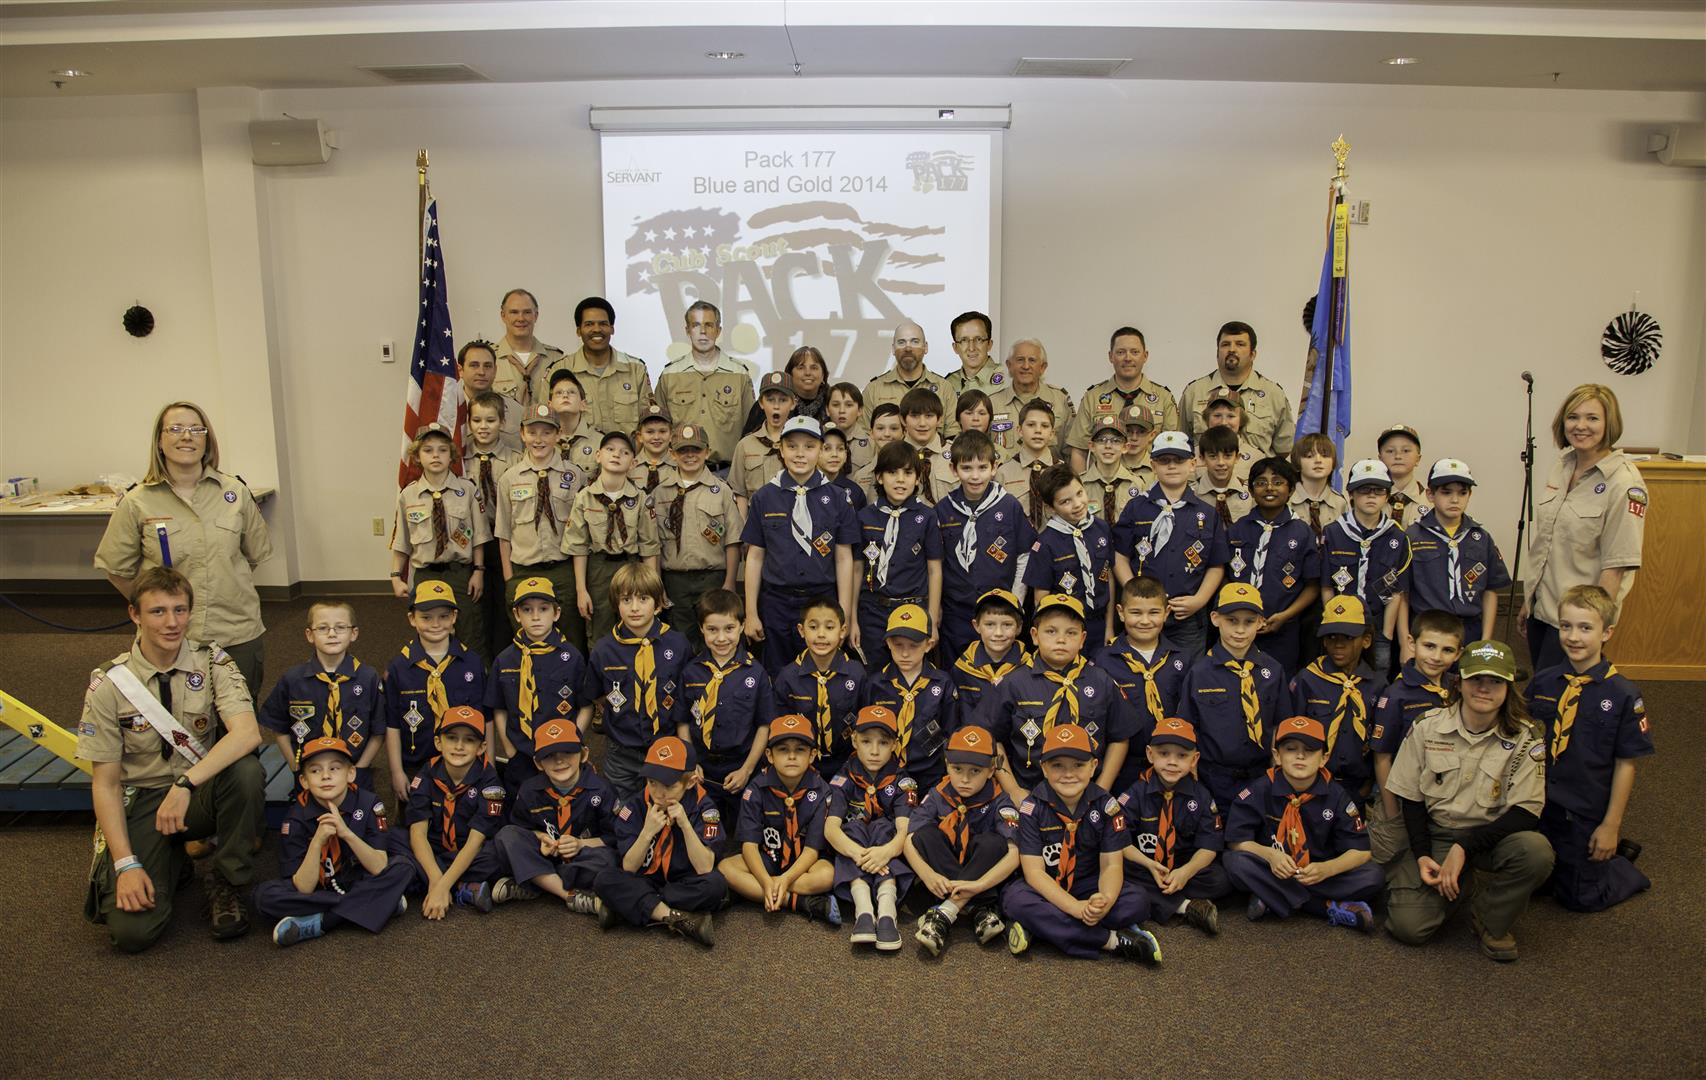 Pack177GroupBG2014 (Large)